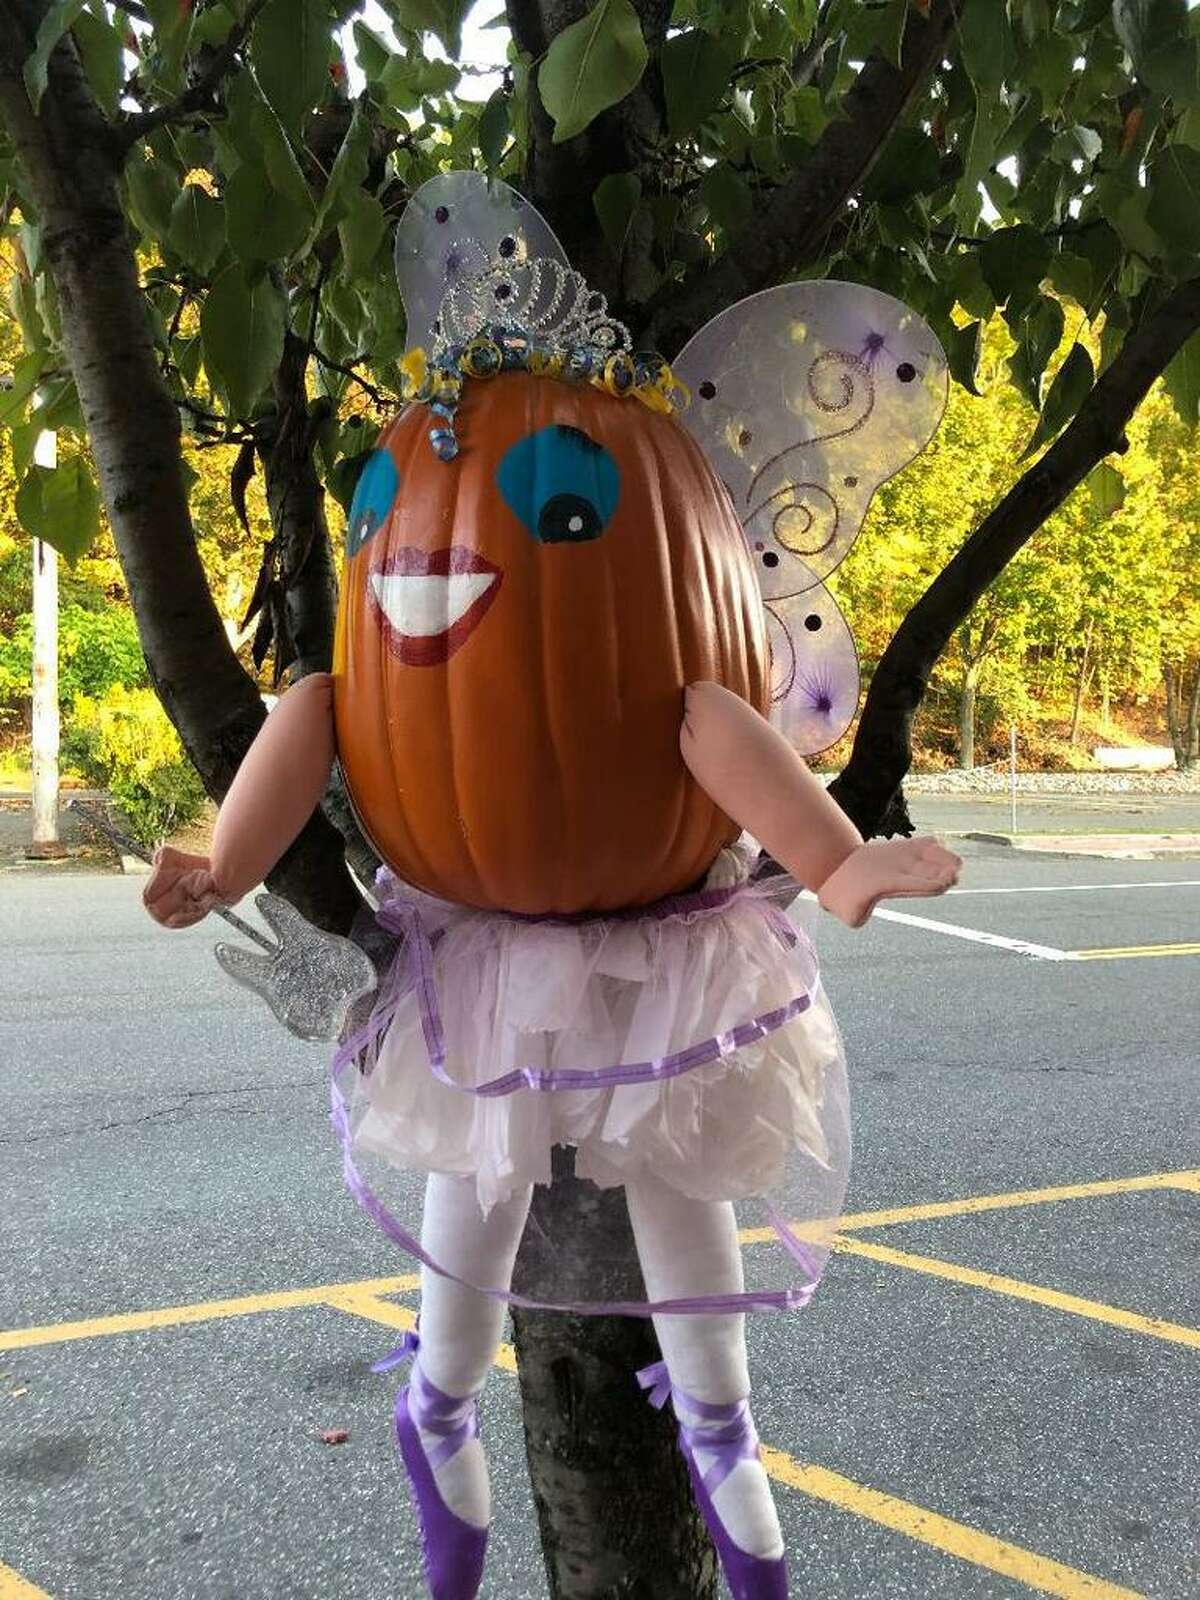 More than 40 scarecrows have invaded downtown Seymour and beyond to usher in the fall season. Over on Main Street, perched in a tree outside Dr. Andrew Kurjanowicz's dental practice, you'll find the tooth fairy, dolled up in a purple tutu, sparkly tiara and a tooth-shaped magic wand. Across the way at the Grateful Dog grooming salon, a giant dog scarecrow greets four-legged friends and their humans, while next door at Rita Tottenham Dance Studios, a scarecrow ballerina is poised to pirouette. Many other local businesses and organizations have teamed up this year with the Seymour Culture and Arts Commission for their annual scarecrow event. Chairwoman Judy Simpson said since the COVID-19 pandemic forced the cancellation of many beloved, autumnal traditions in town, including the Seymour Pumpkin Festival and the commission's downtown trick or treating/costume parade, it made sense to spread the scarecrow love around.